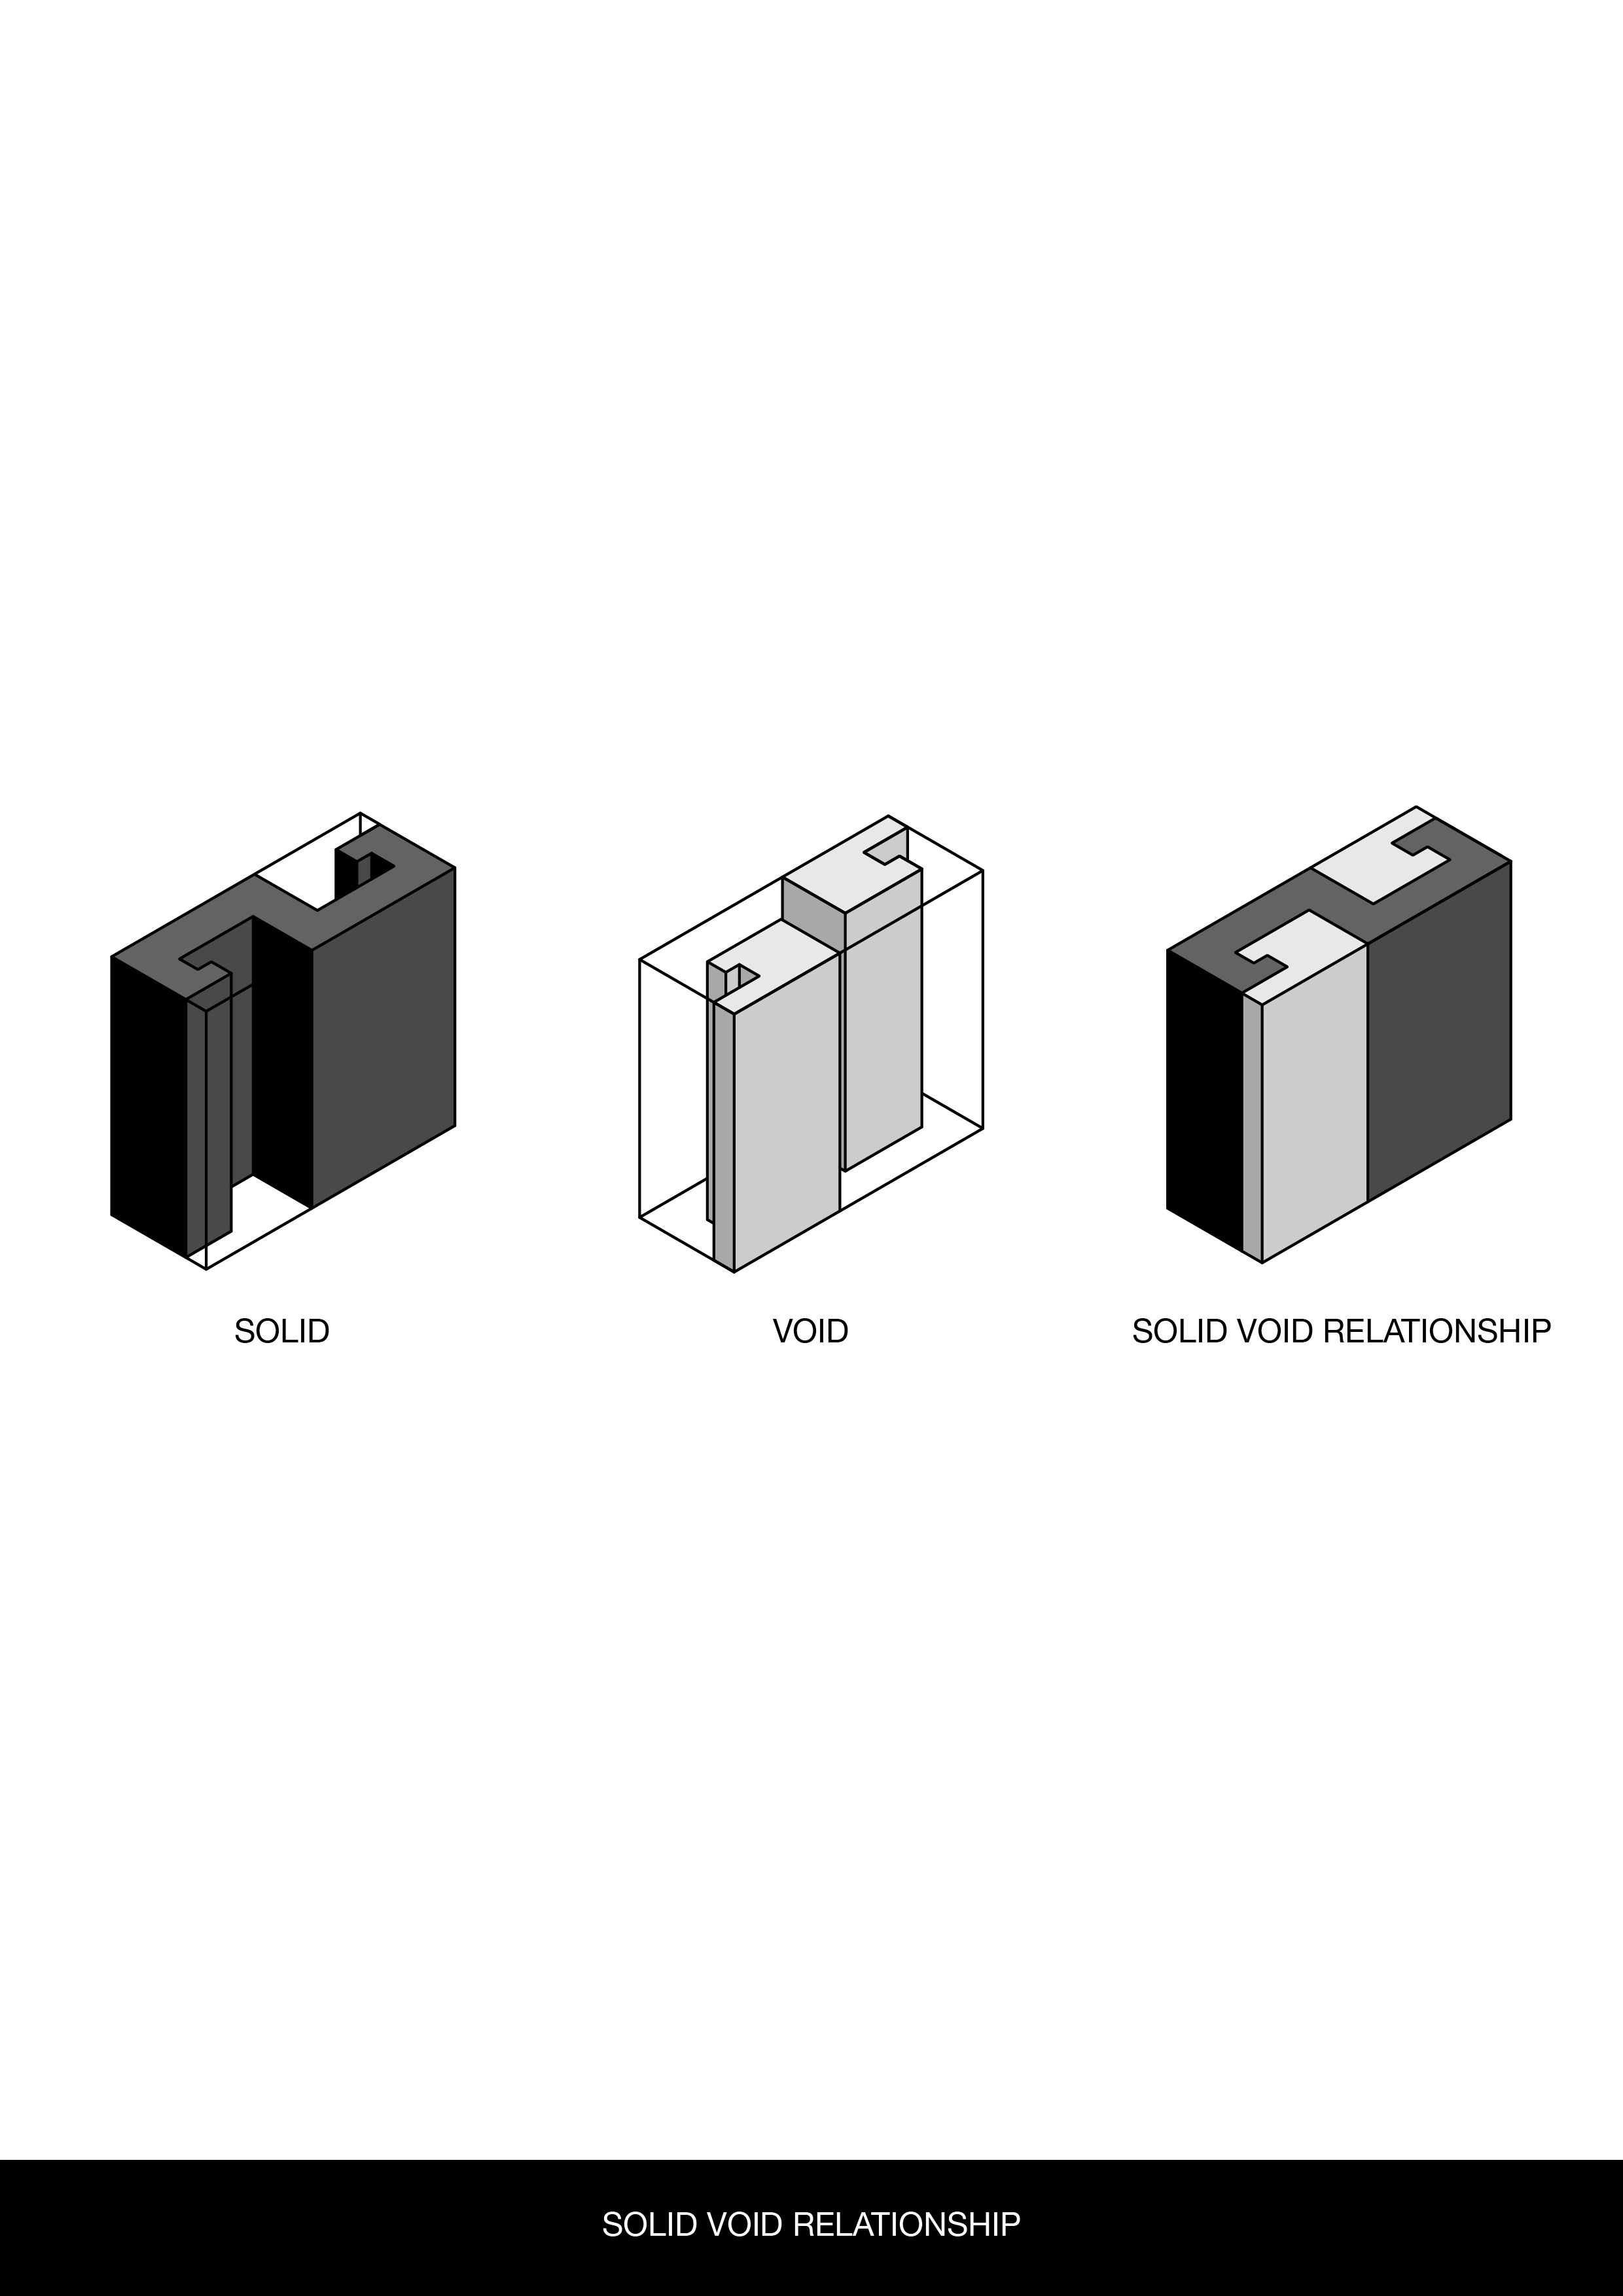 Solid and void diagram diagrams pinterest diagram for Solid void theory architecture